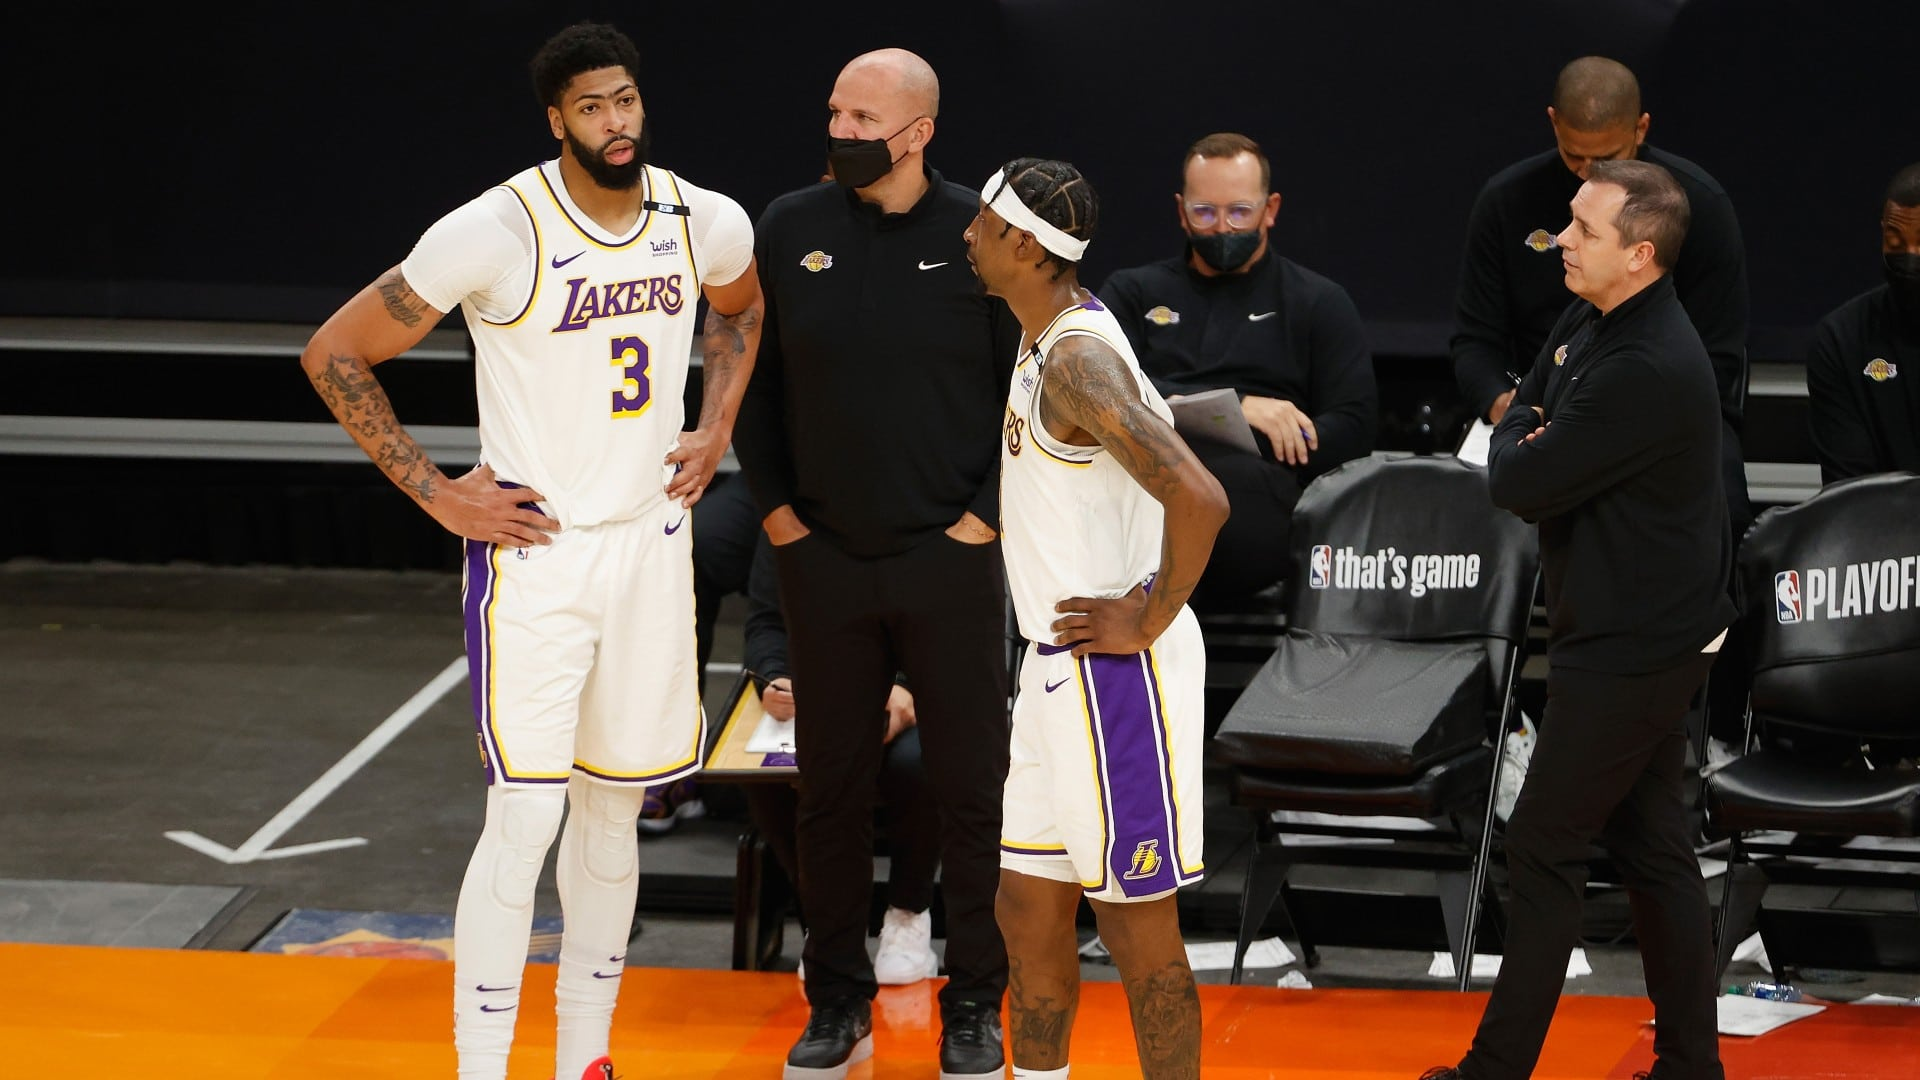 lakers-atomize-updates-will-anthony-davis-kentavious-caldwell-pope-play-in-sport-4-vs-suns.jpg